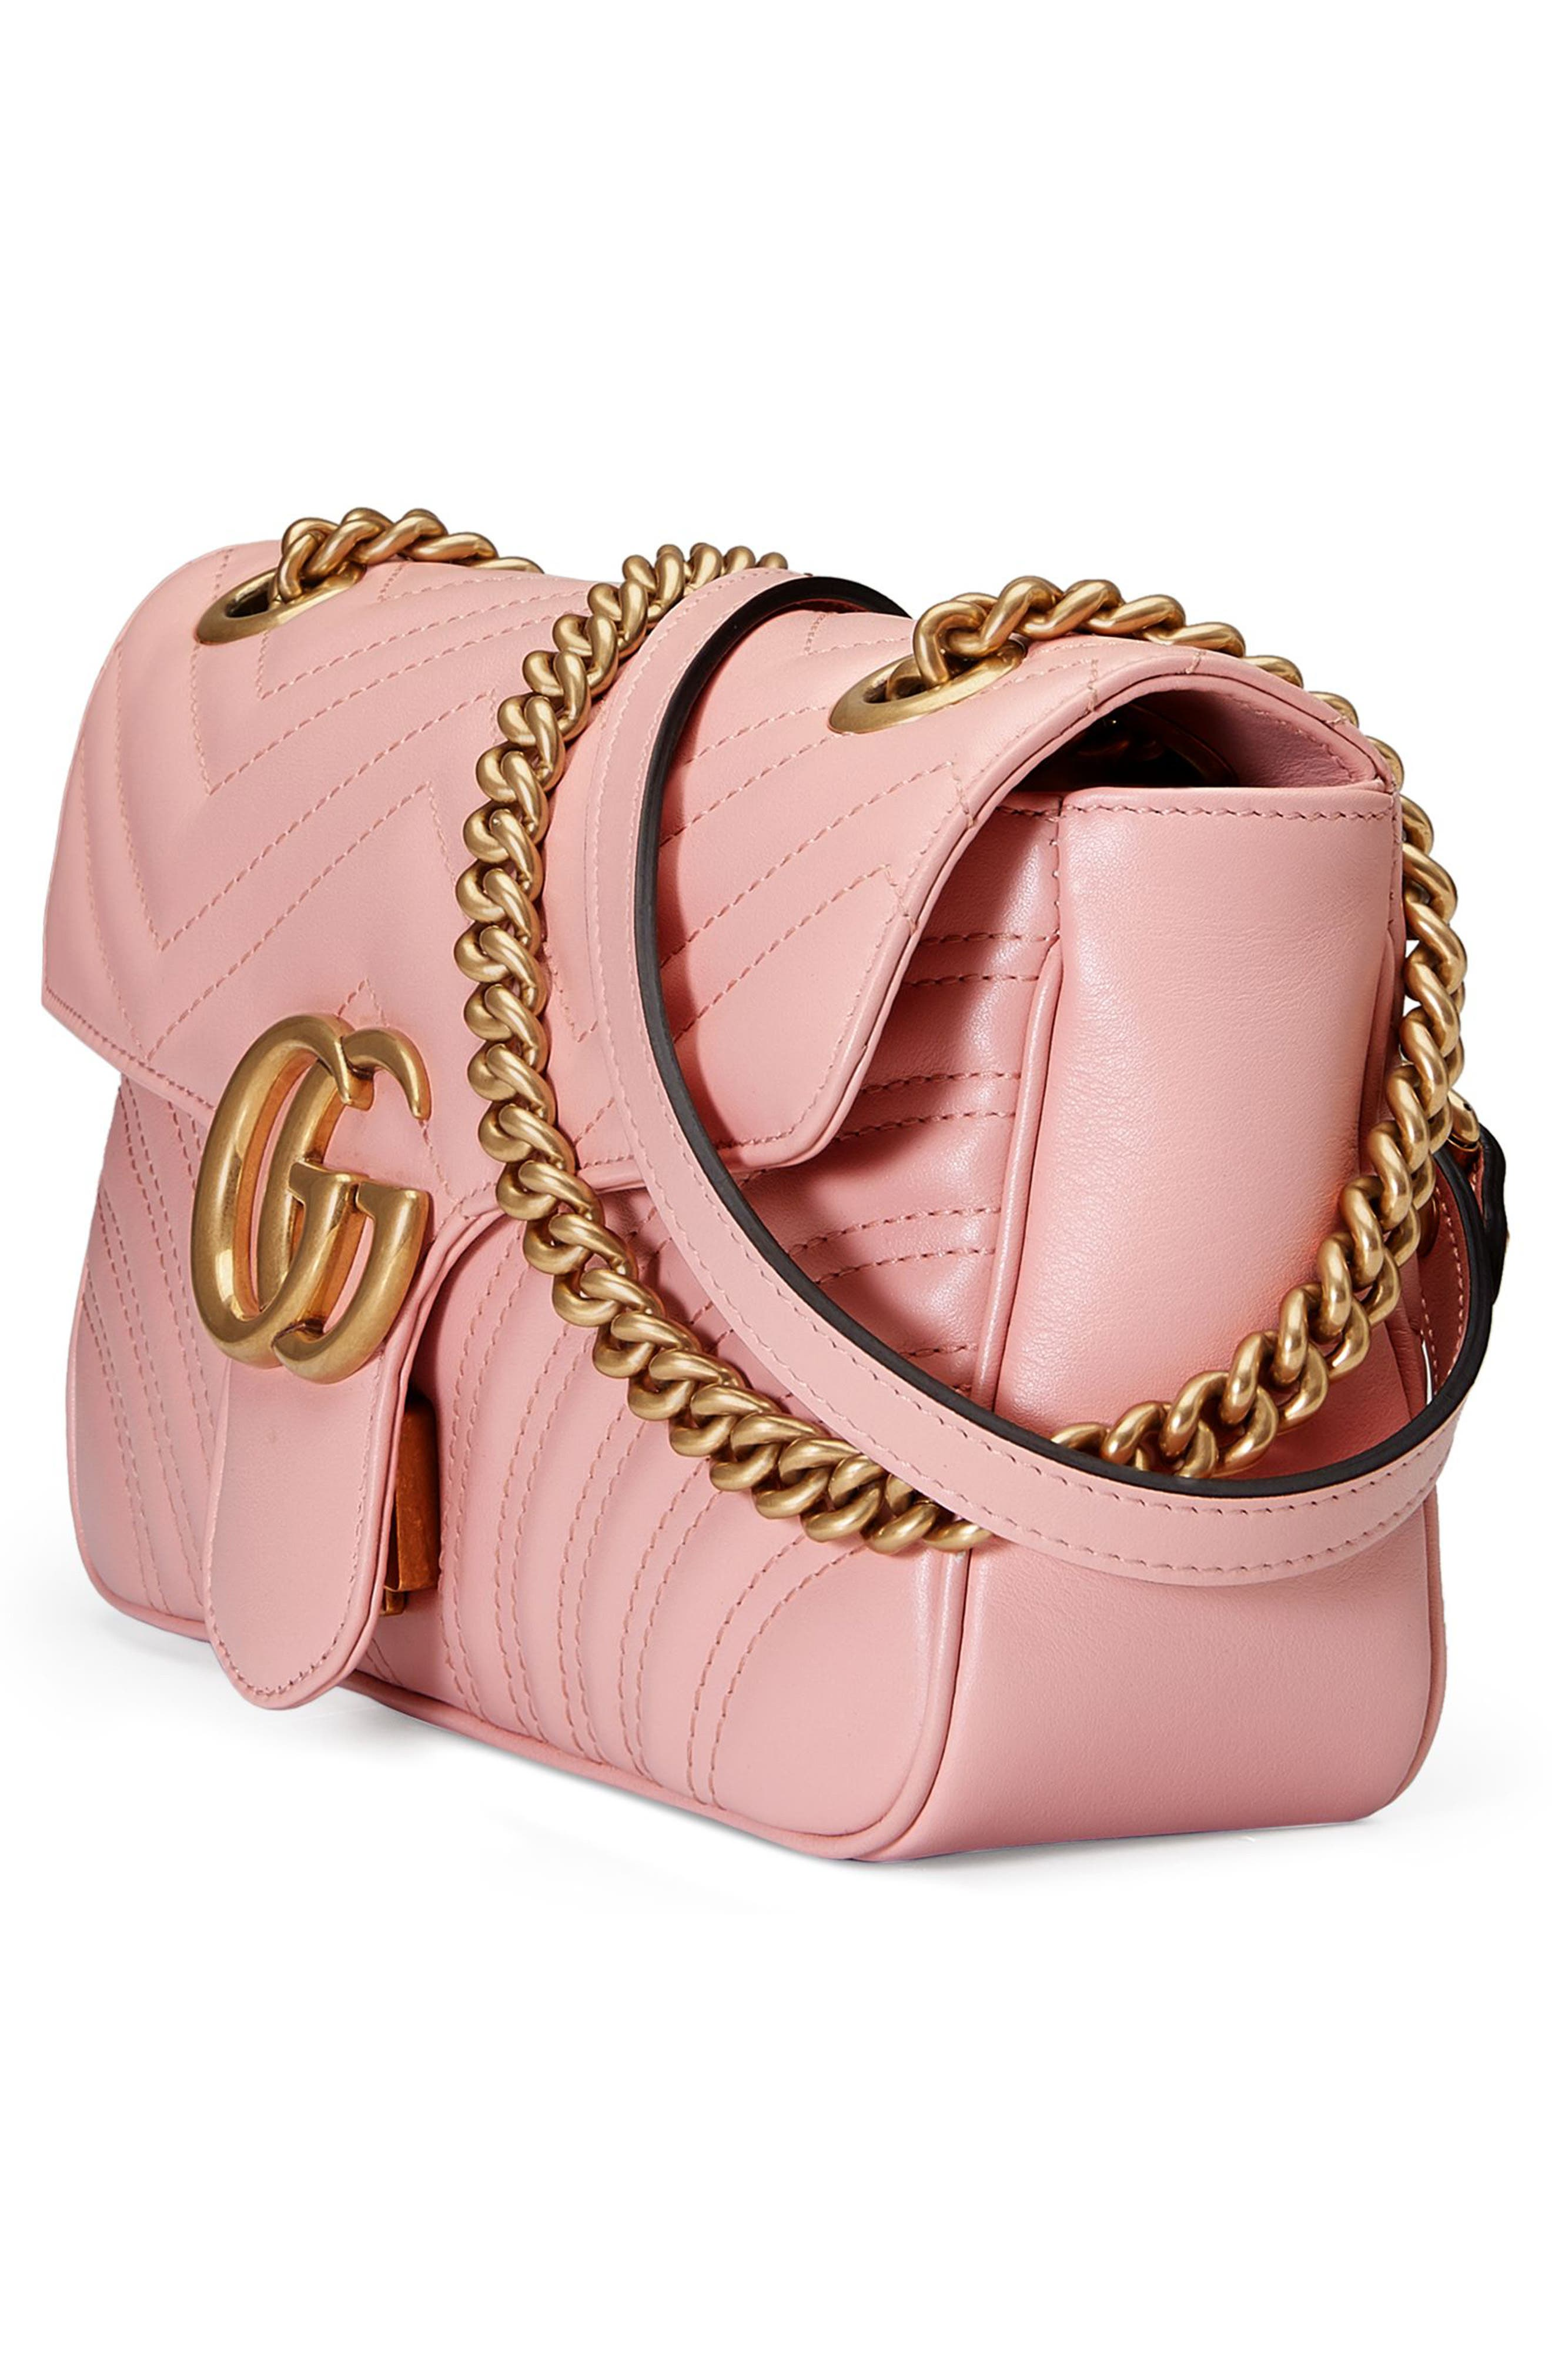 Small GG Marmont 2.0 Matelassé Leather Shoulder Bag,                             Alternate thumbnail 5, color,                             PERFECT PINK/ PERFECT PINK